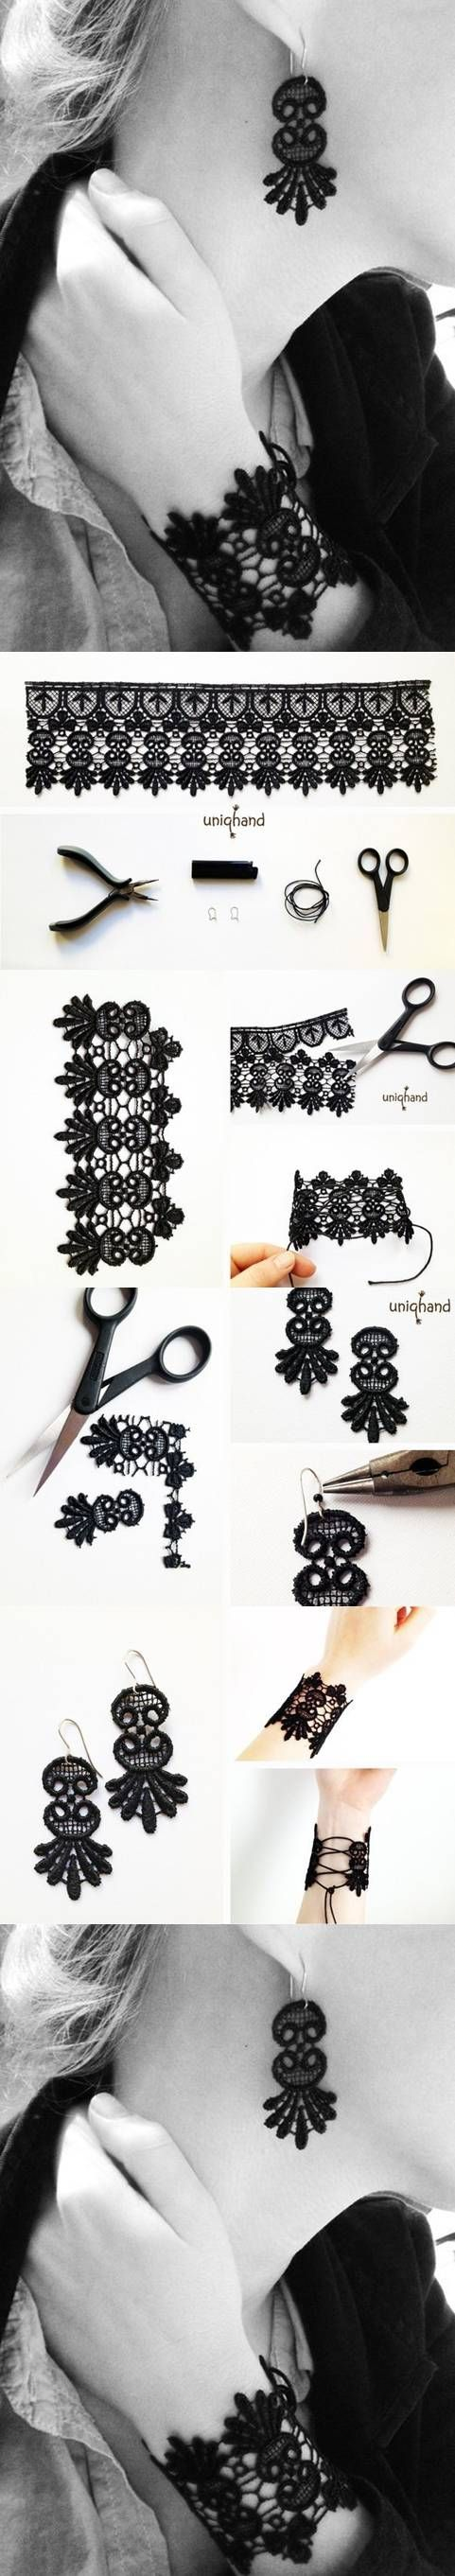 DIY Lace Bracelet and Earrings DIY Lace Bracelet and Earrings